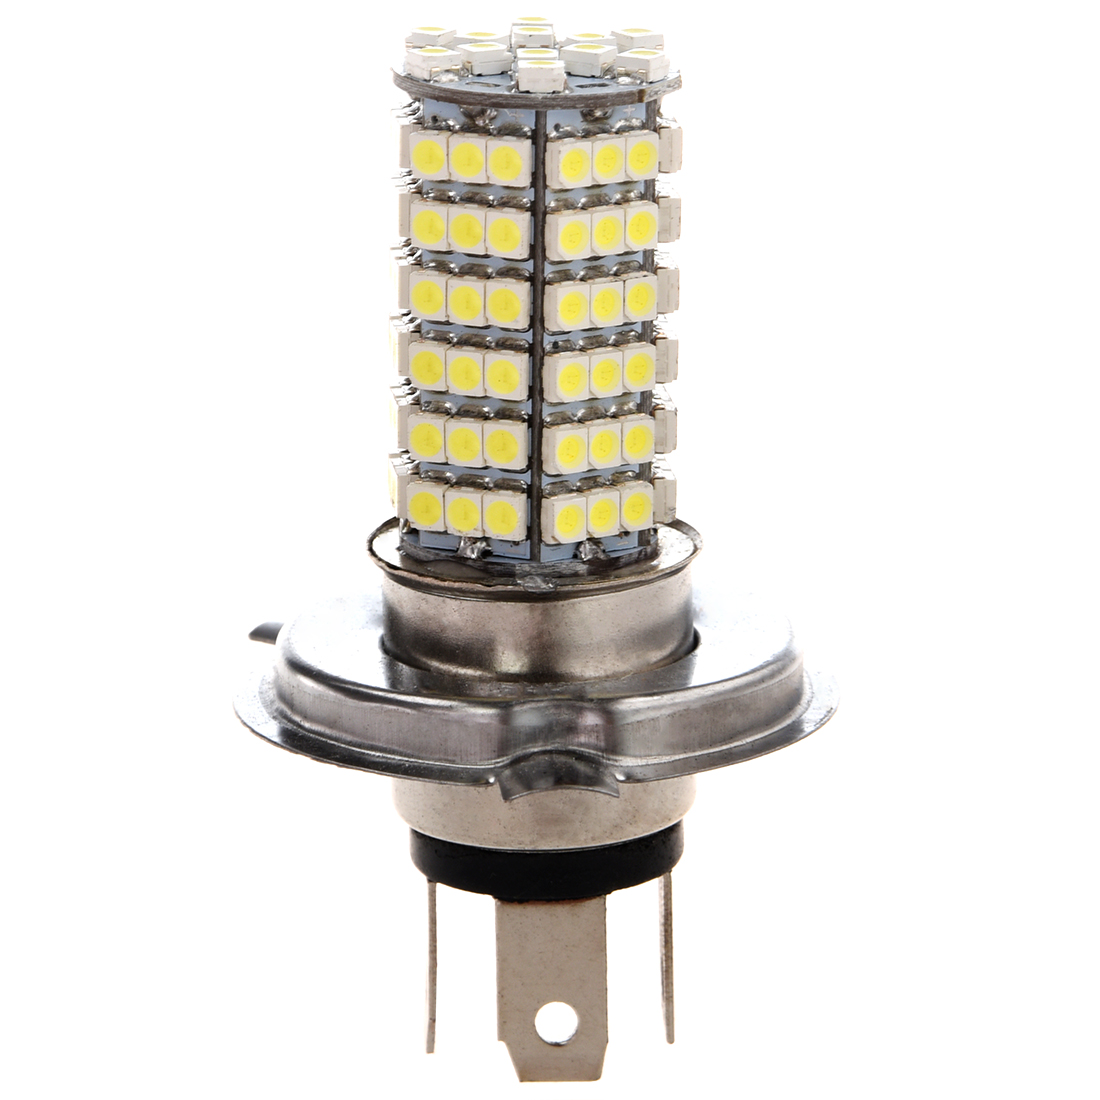 New 2 Car VEHICLE AUTO H4 120 SMD LED Light Bulb Lamp 12V